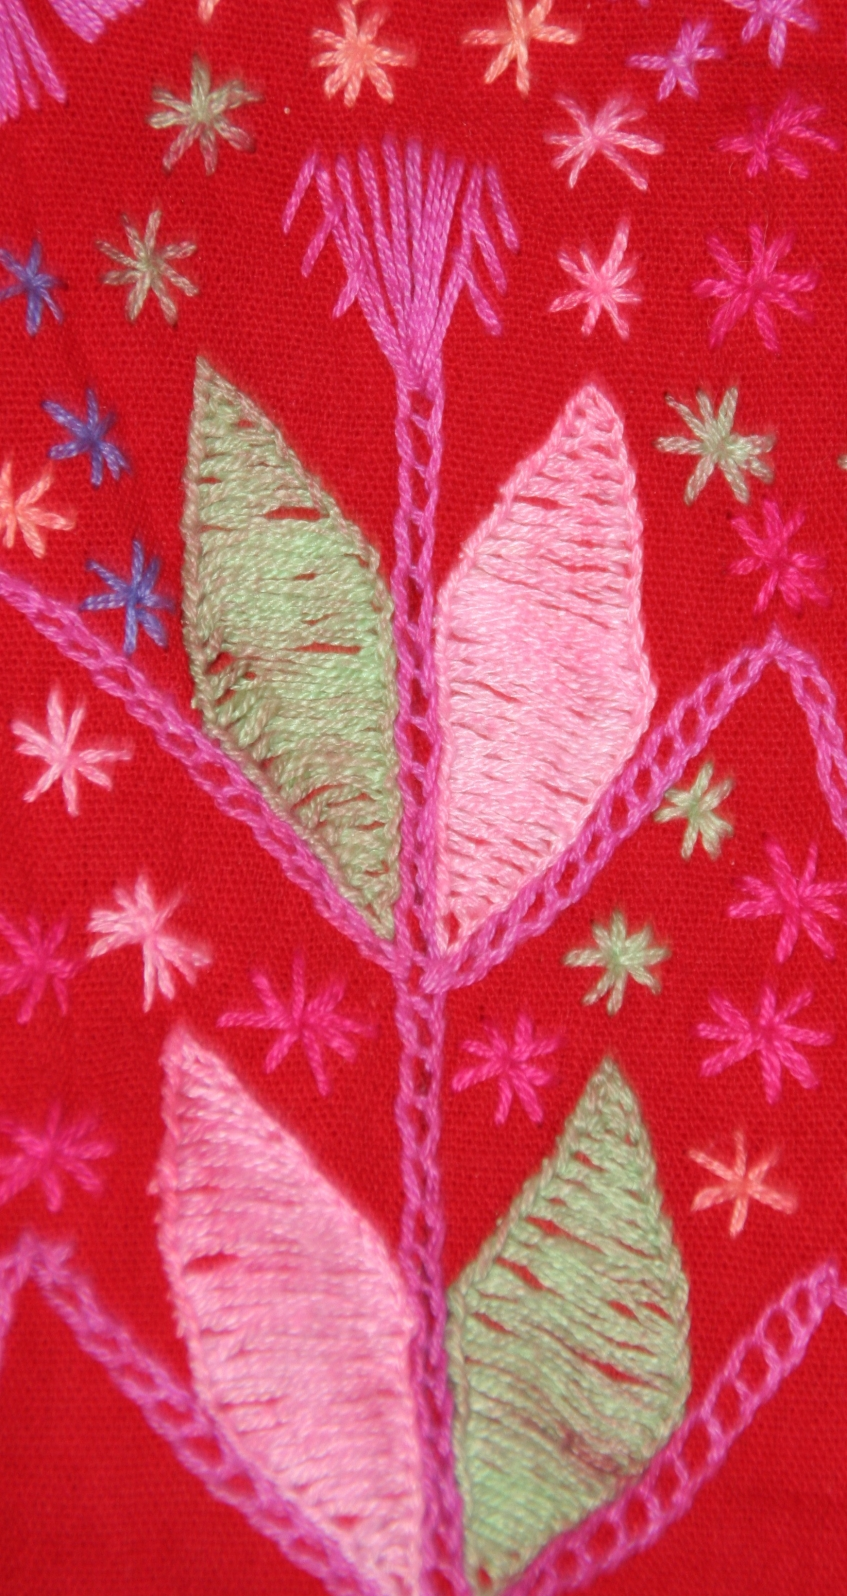 Corn Symbol from an Embroidered Shirt